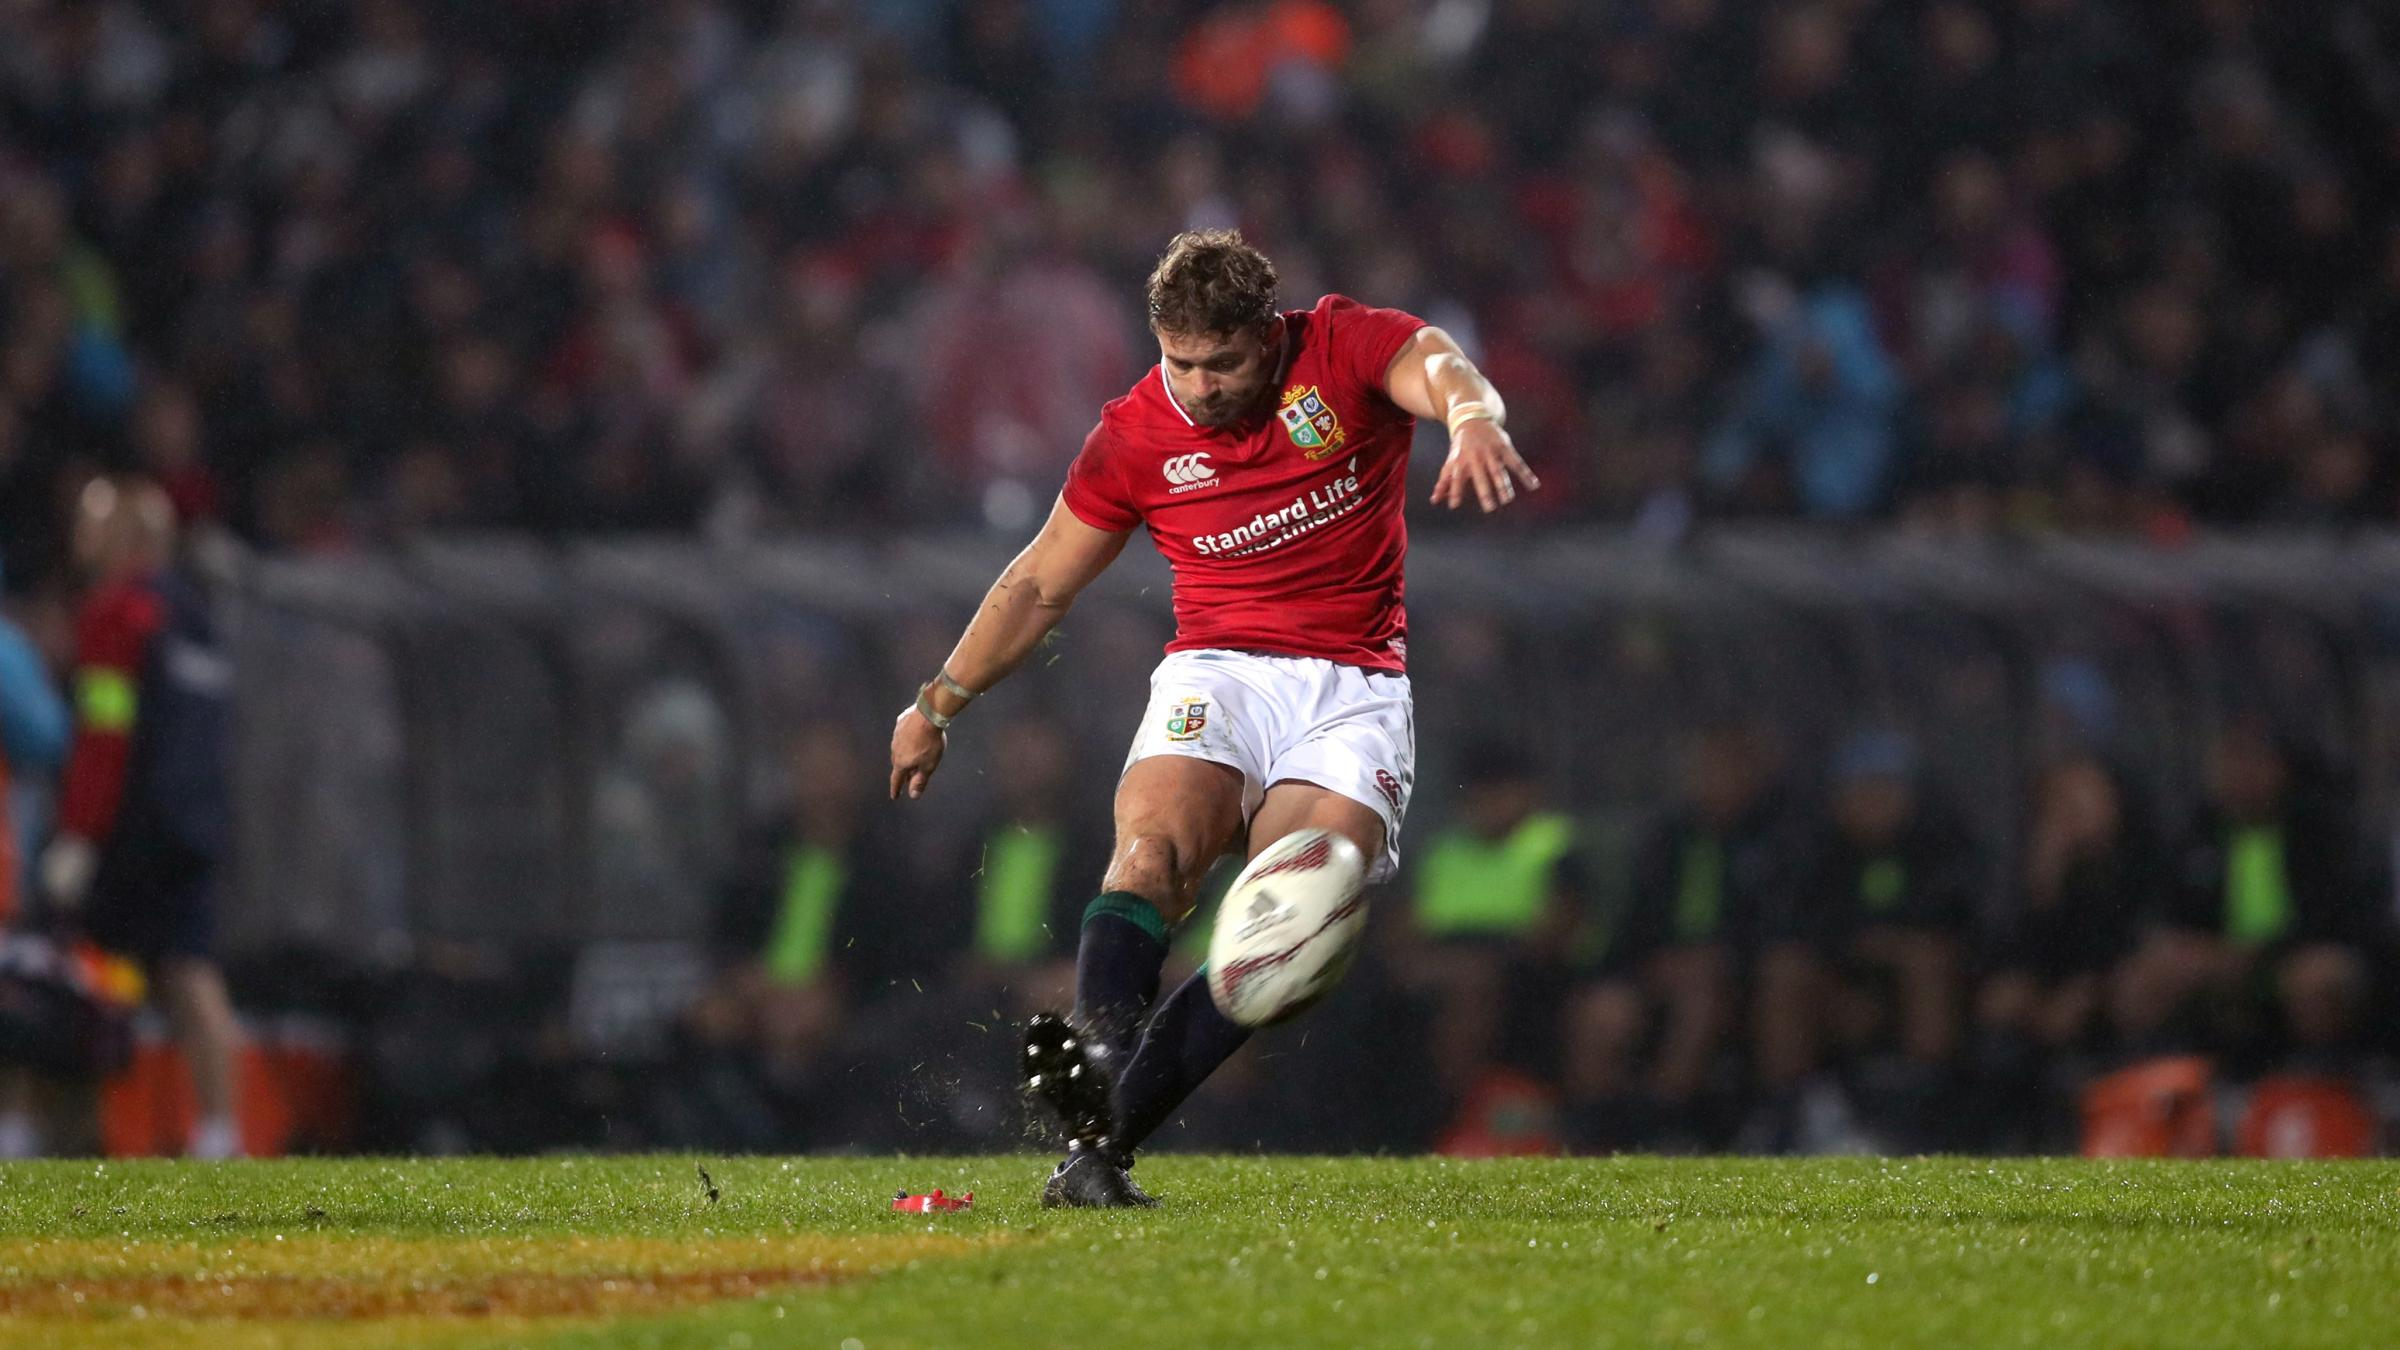 Much-improved British and Irish Lions beat Maori All Blacks 32-10